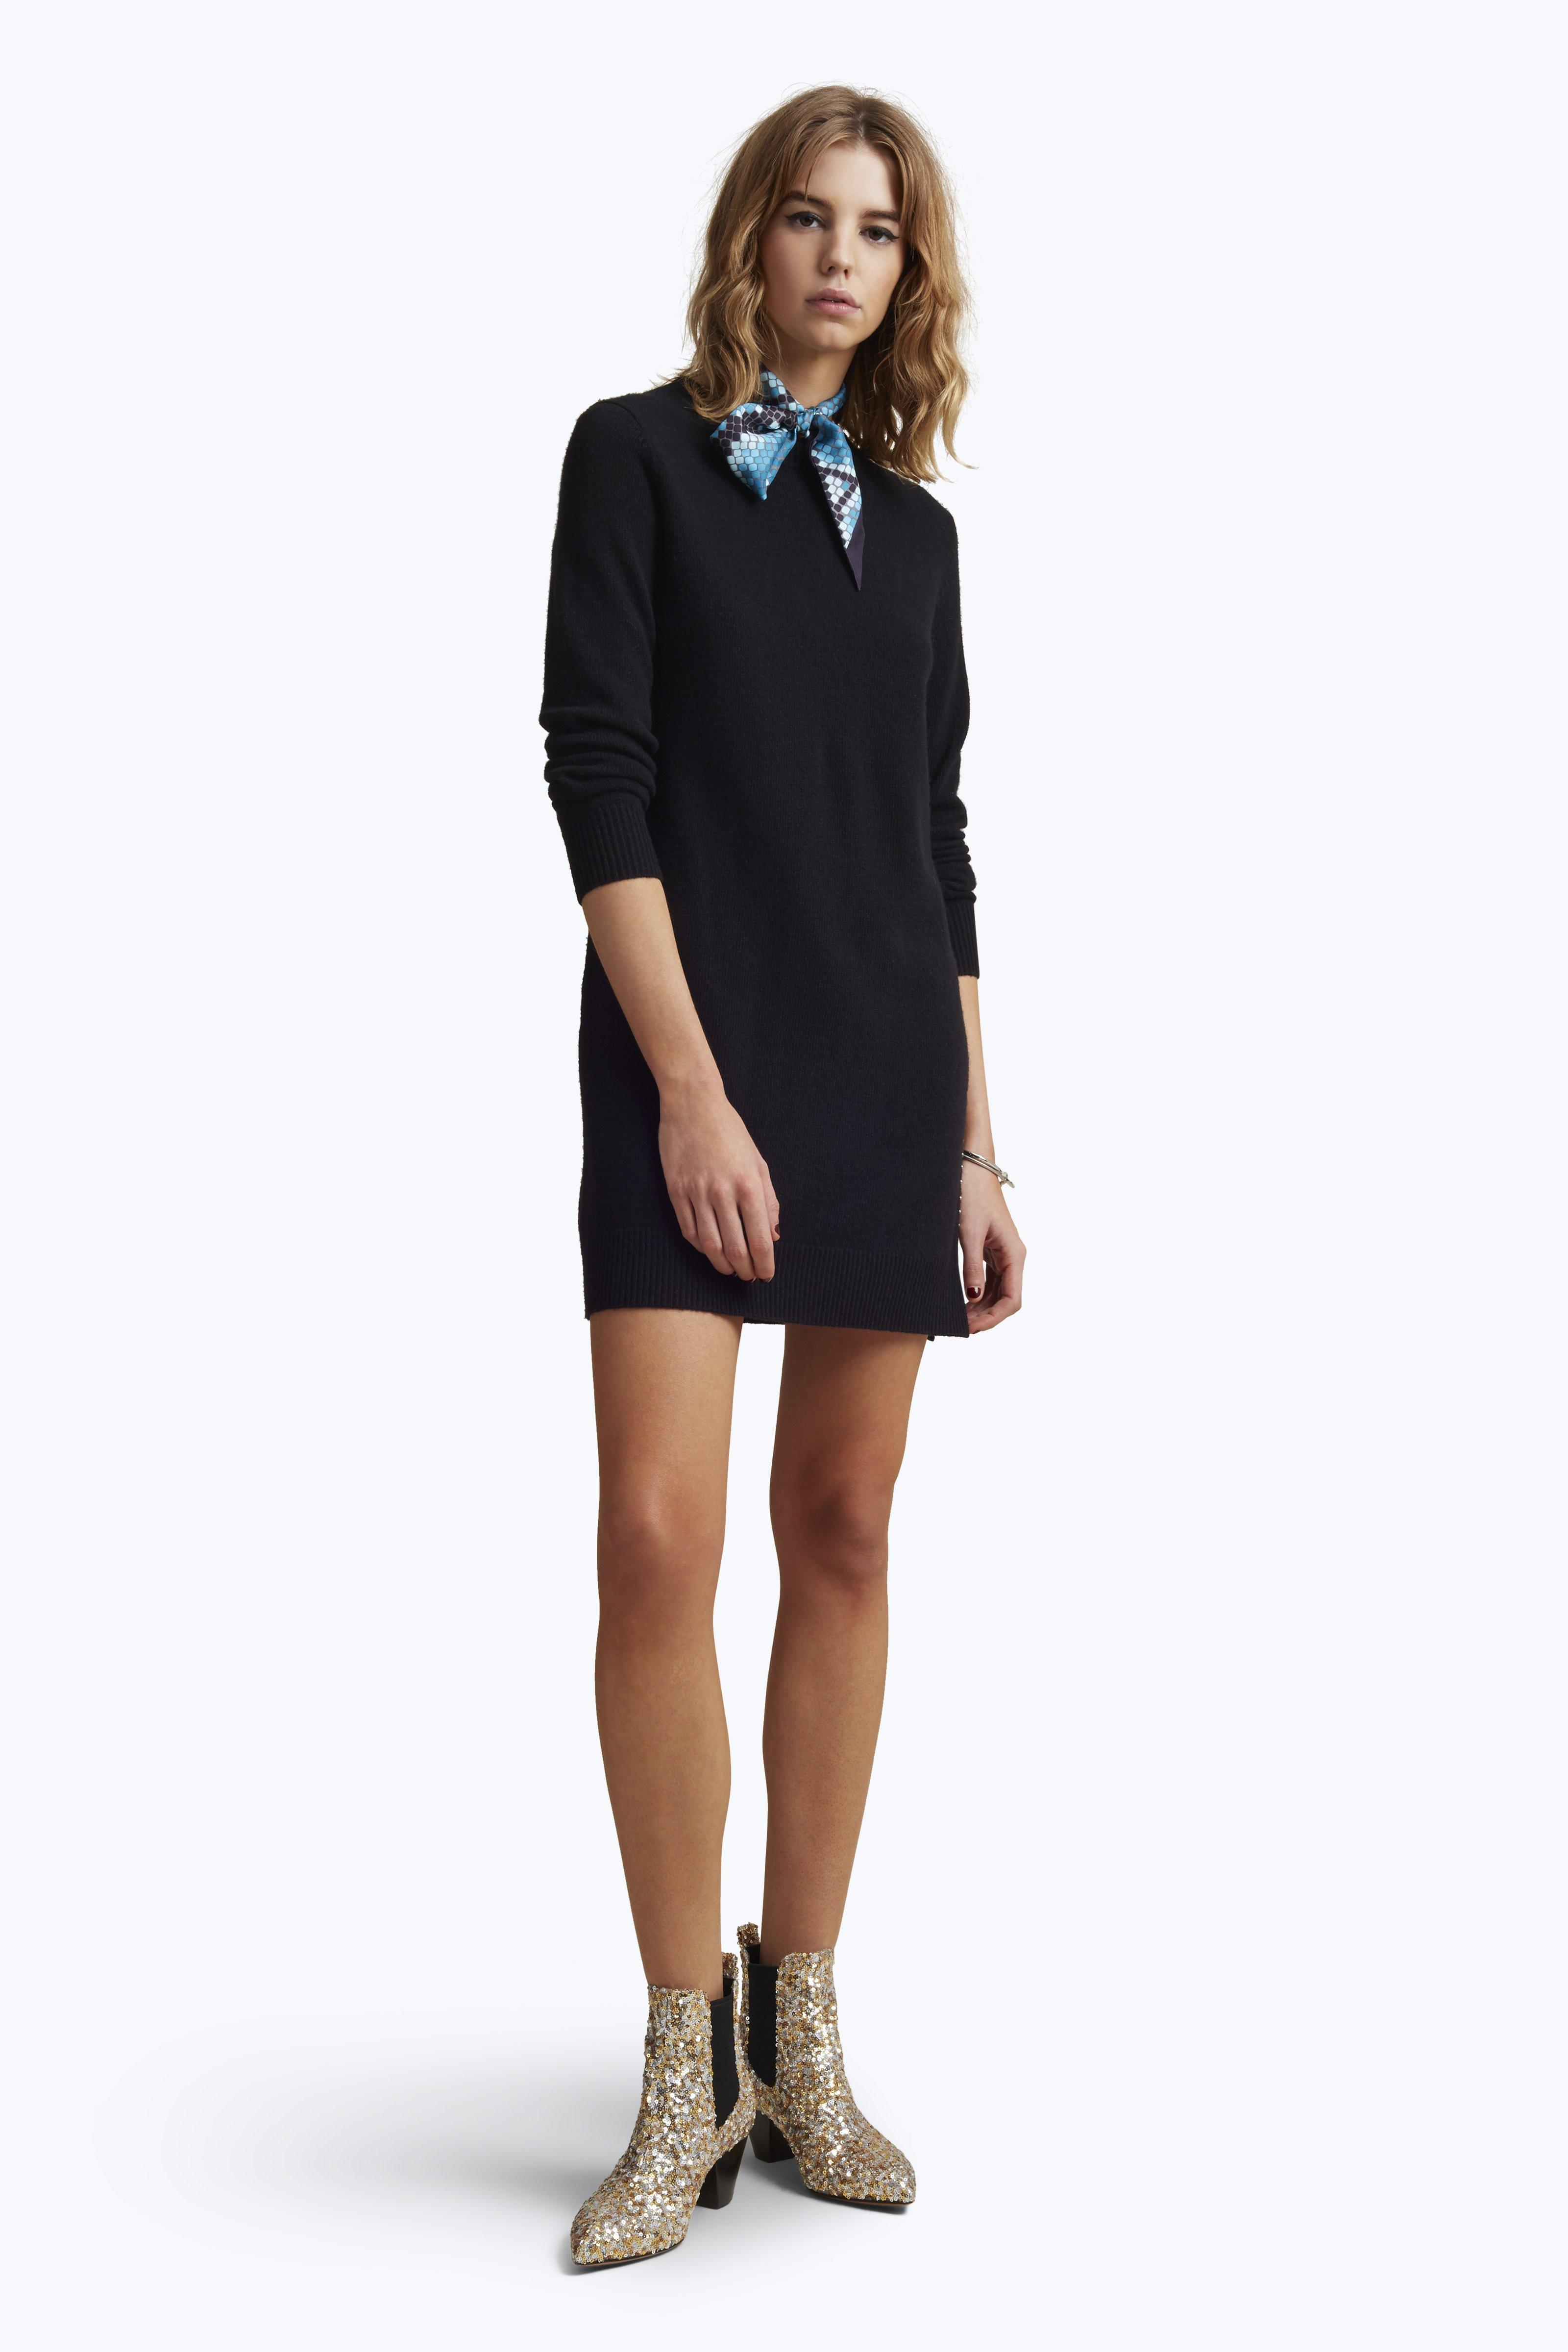 Long-Sleeve V-Neck Dress With Front Ruching - Marc Jacobs